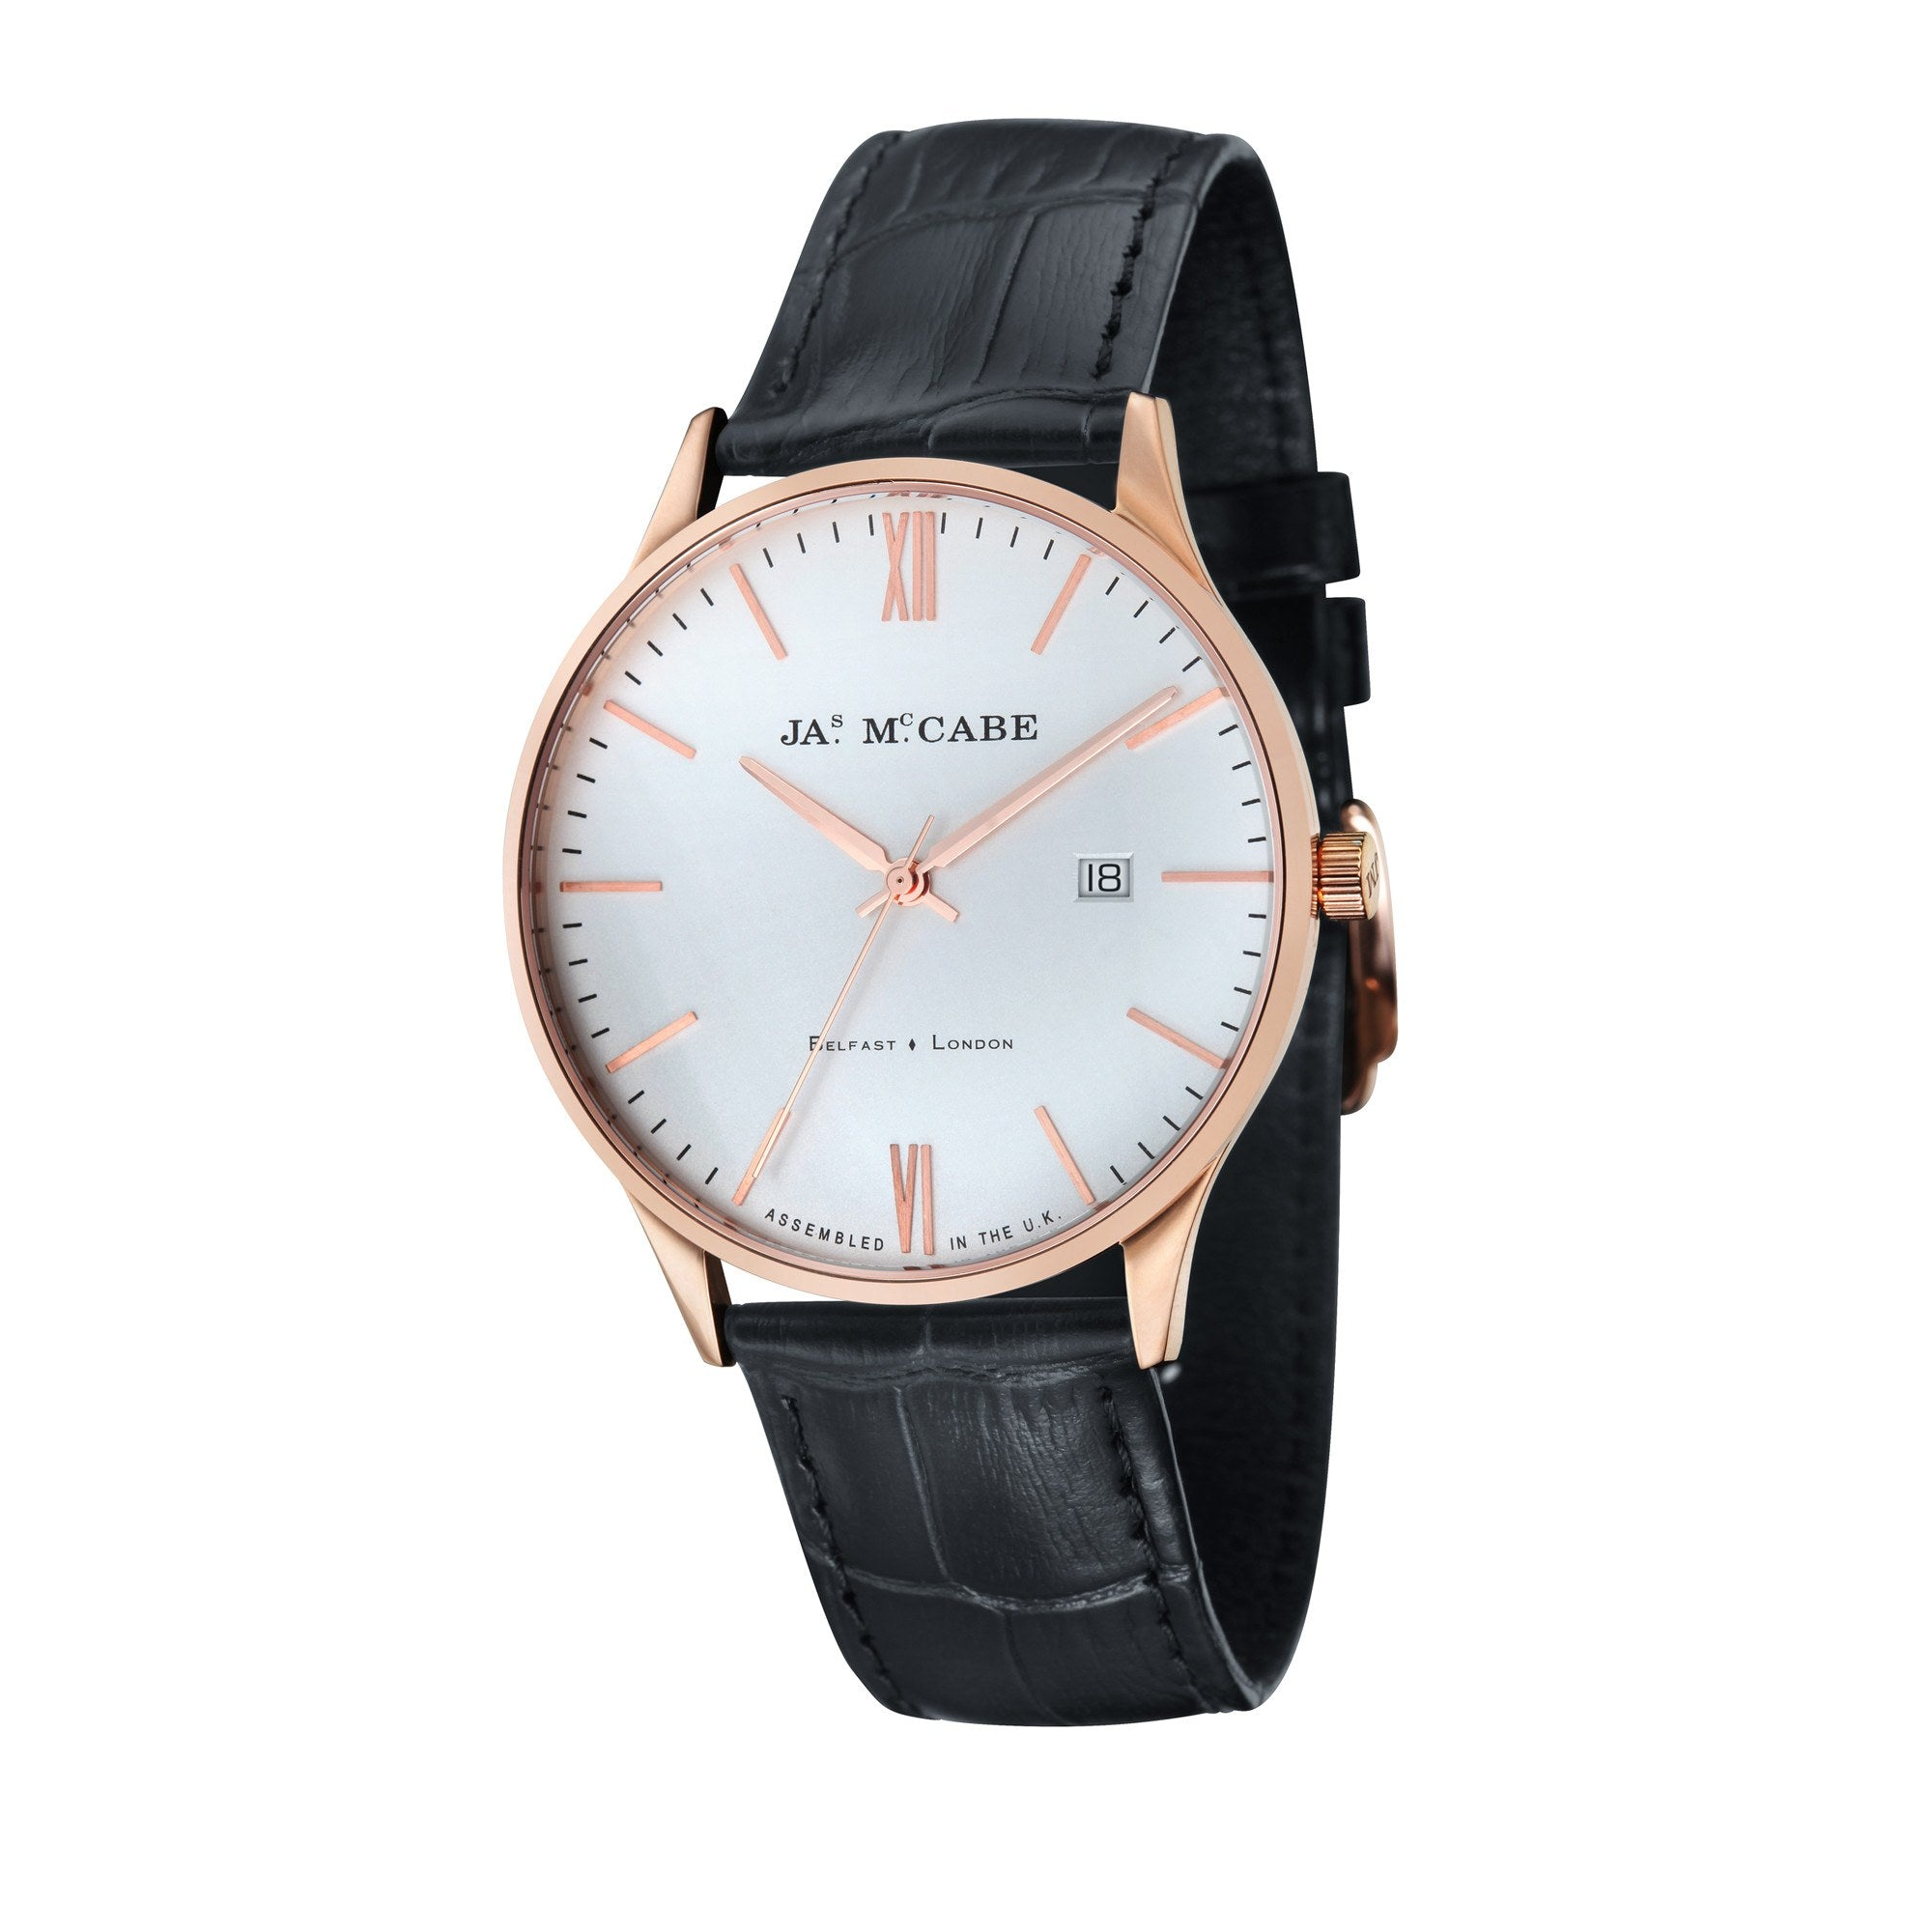 James Mccabe Men's JM-1016-03 London - Slim Rose Gold Quartz Watch with Black Leather Strap